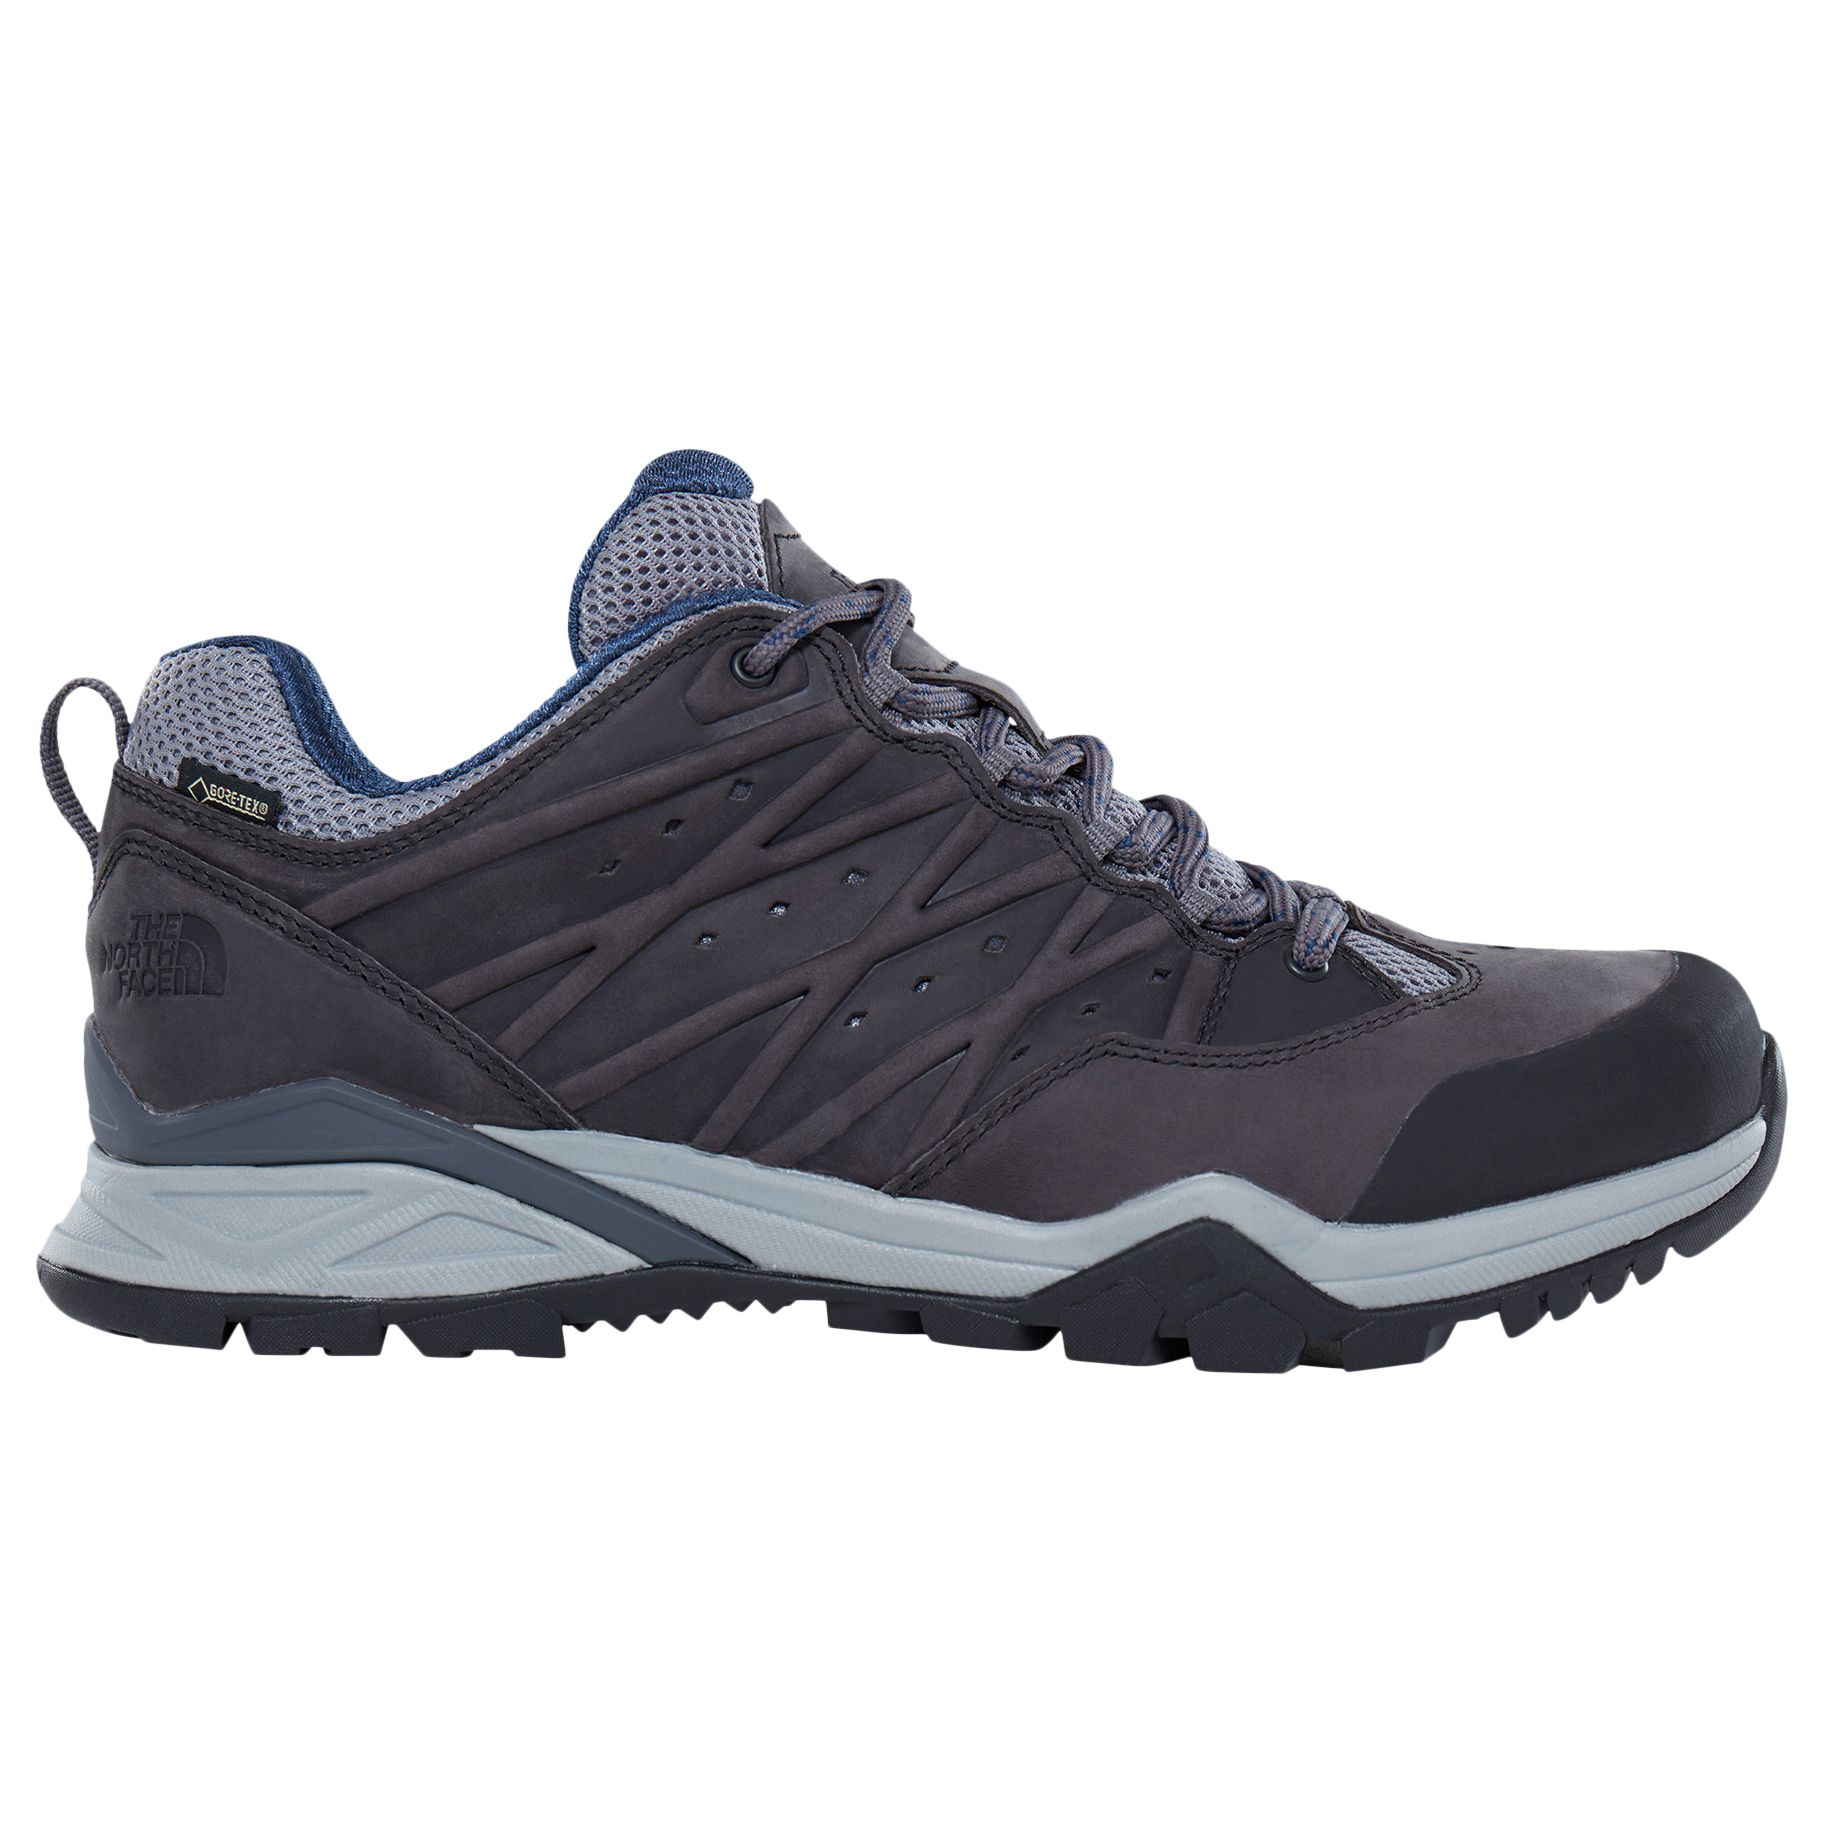 740e533ccb The North Face Hedgehog Hike 2 GORE-TEX Men's Hiking Boots, Grey/Blue